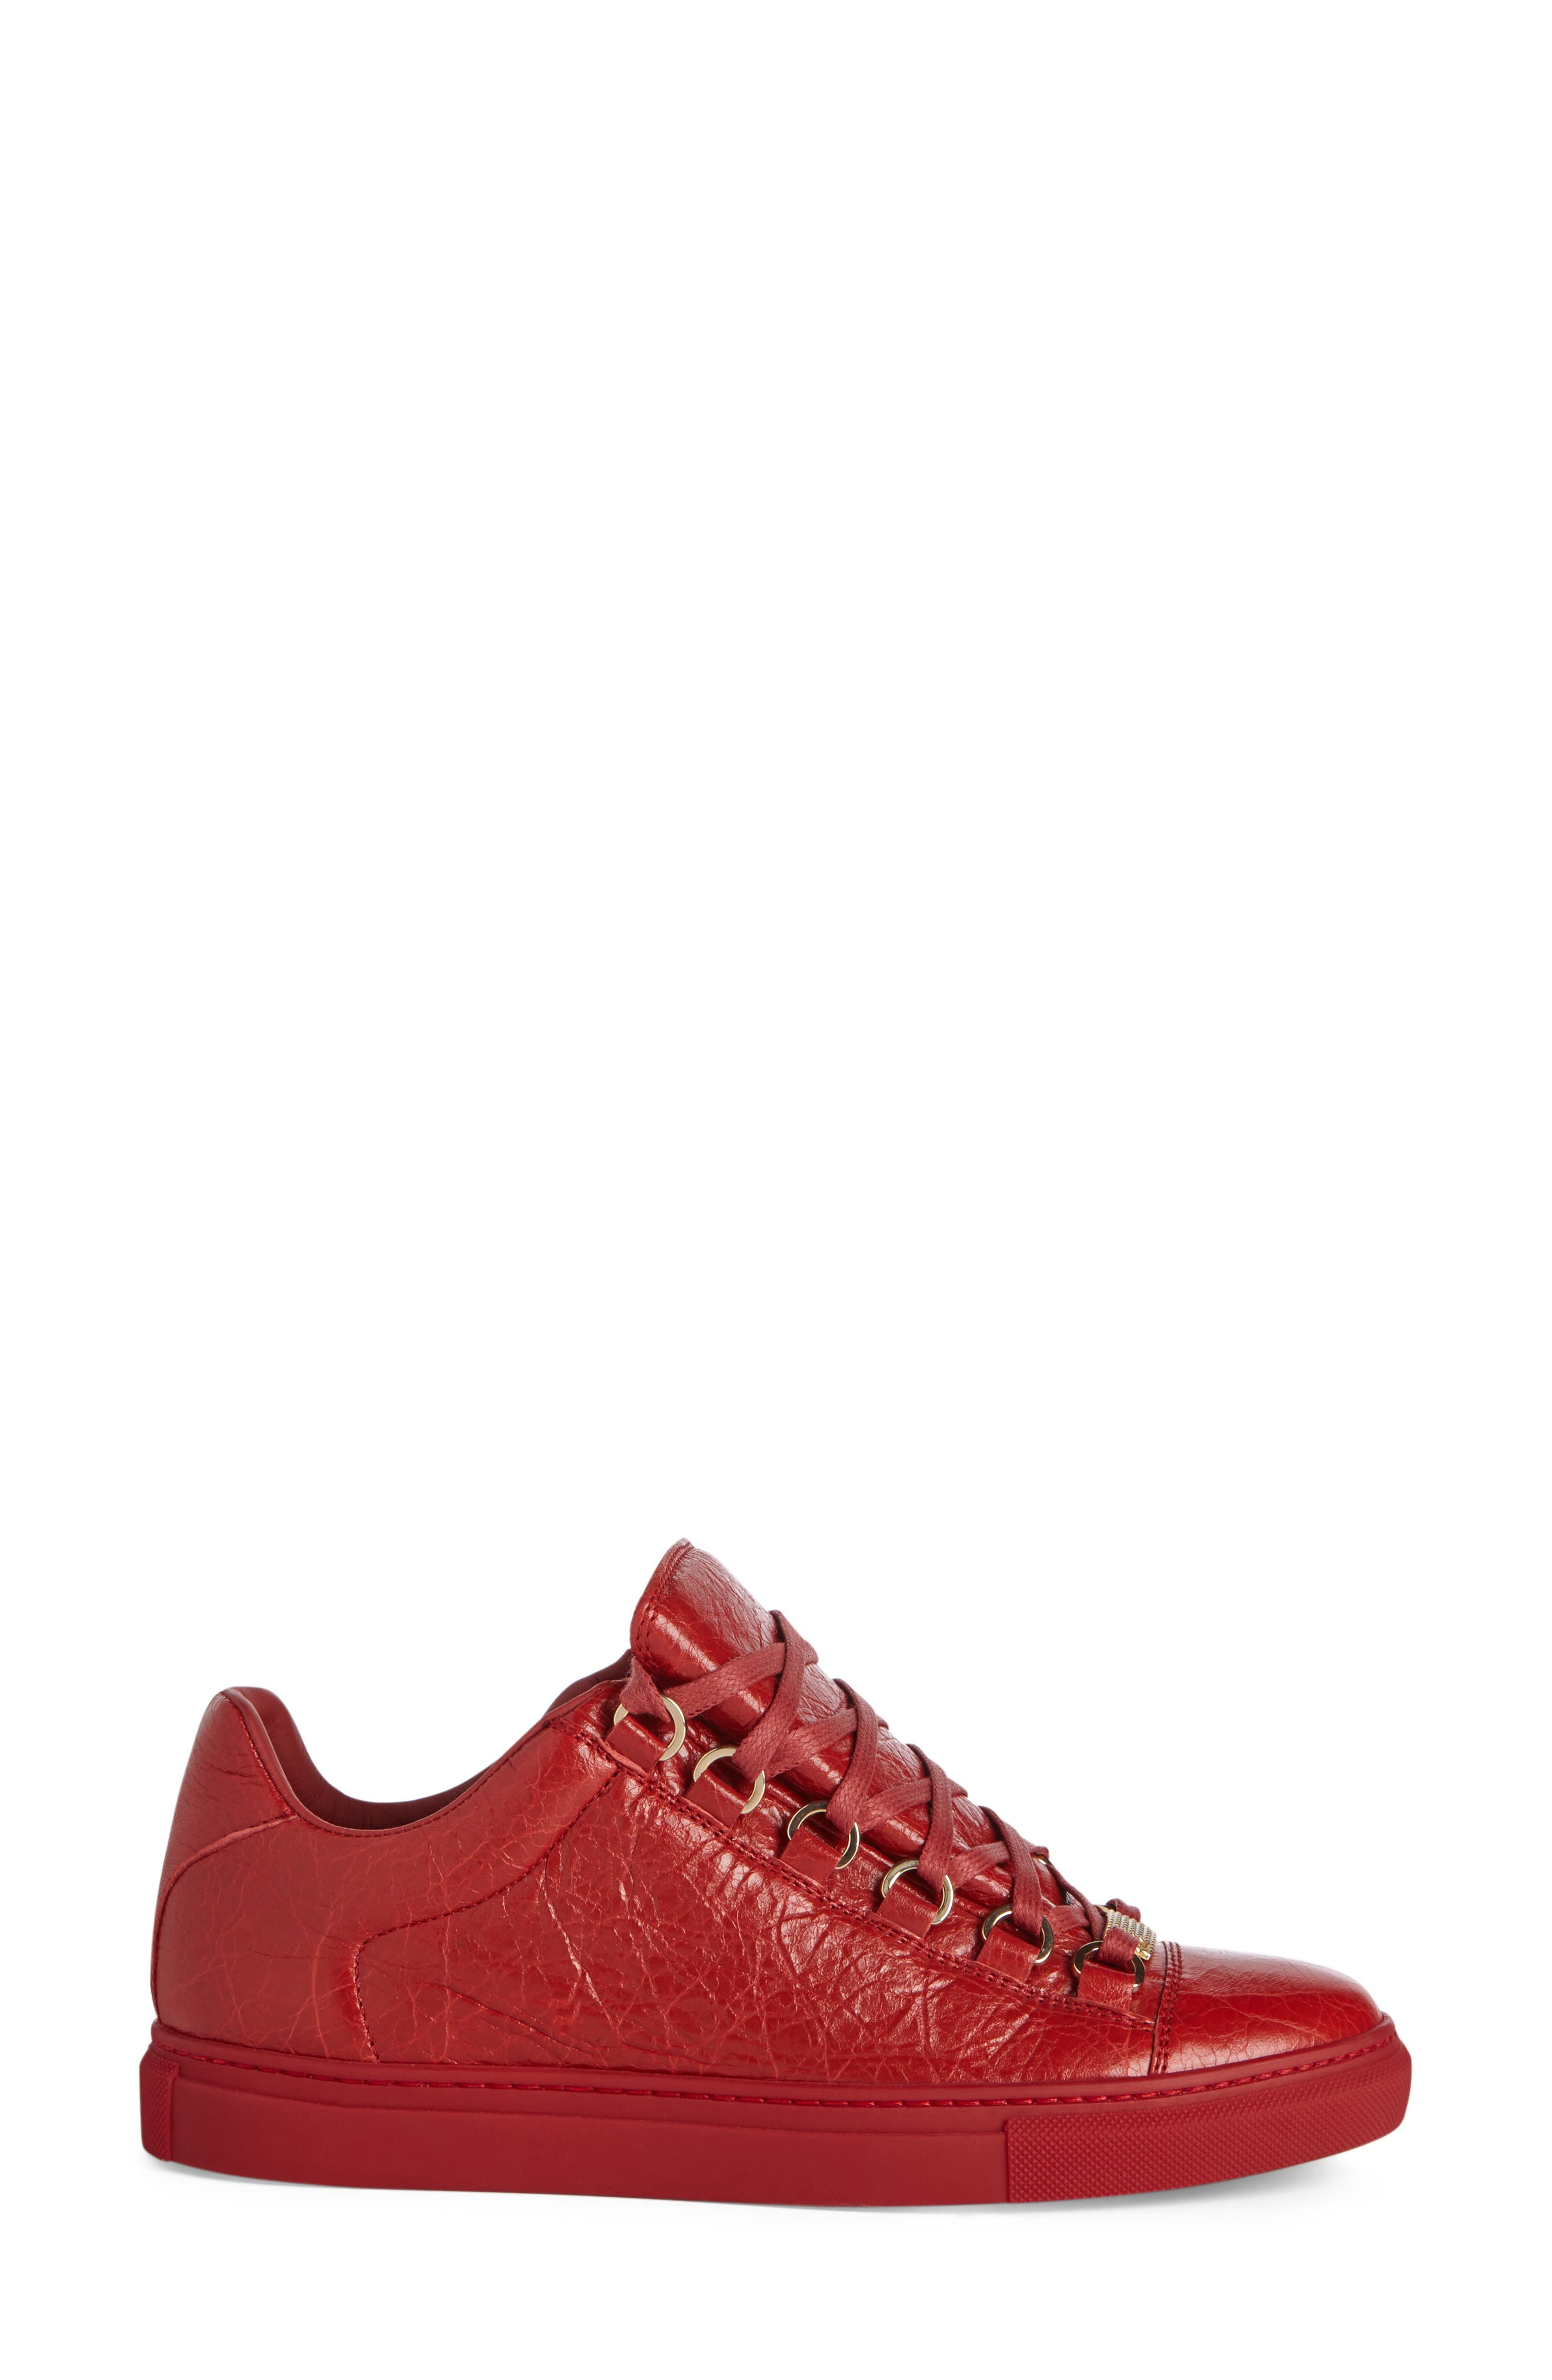 Low Top Sneaker,                             Alternate thumbnail 19, color,